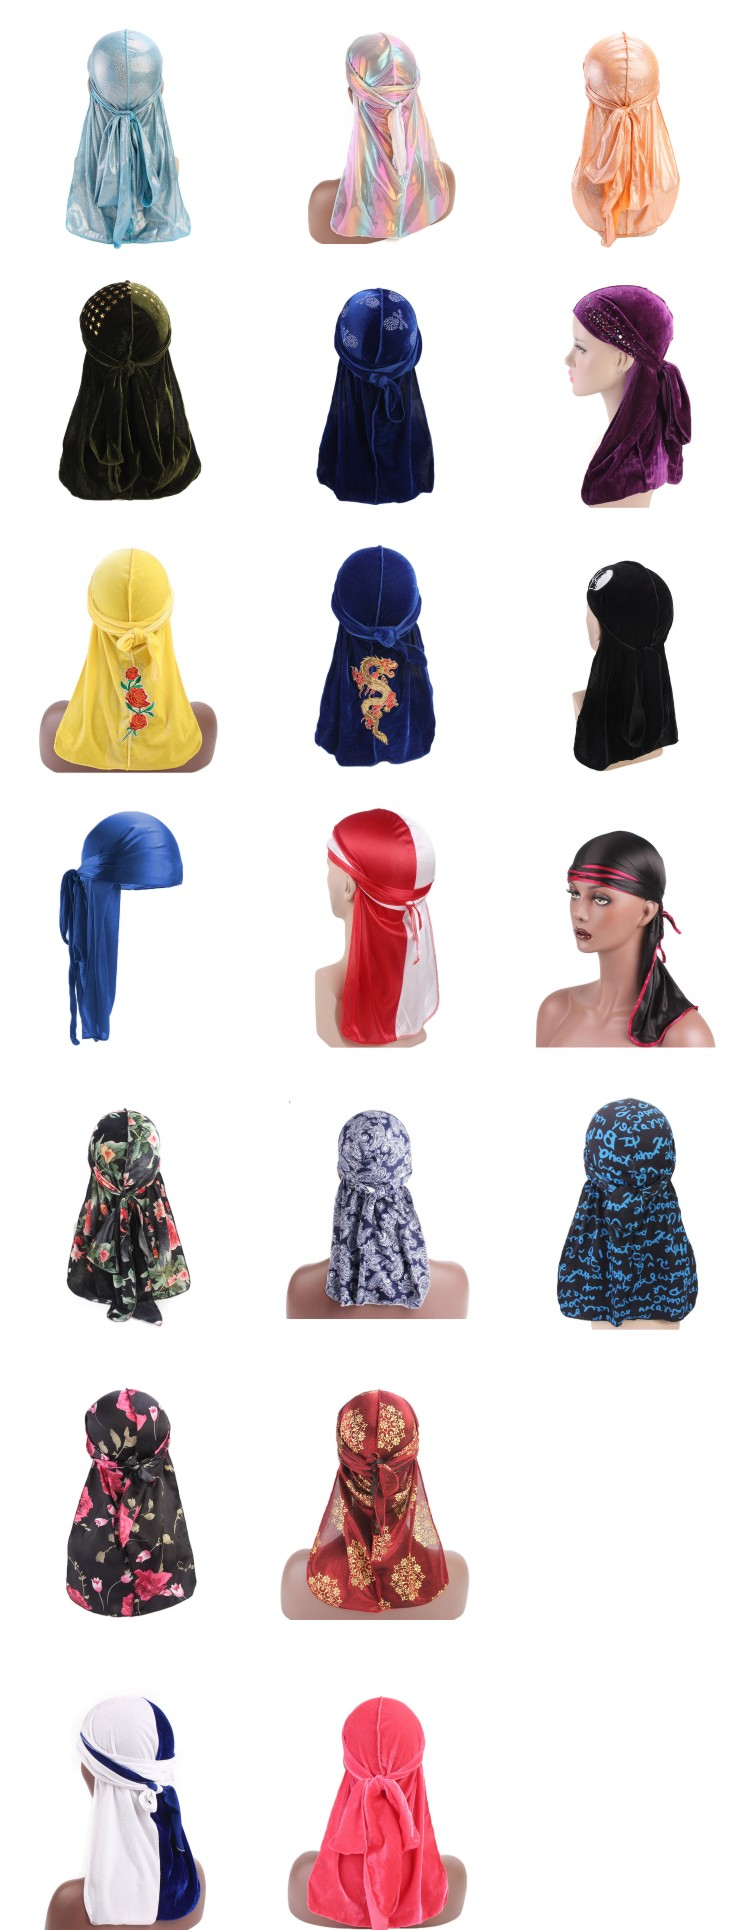 premium red bandanas holographic laser printing colored durags for men